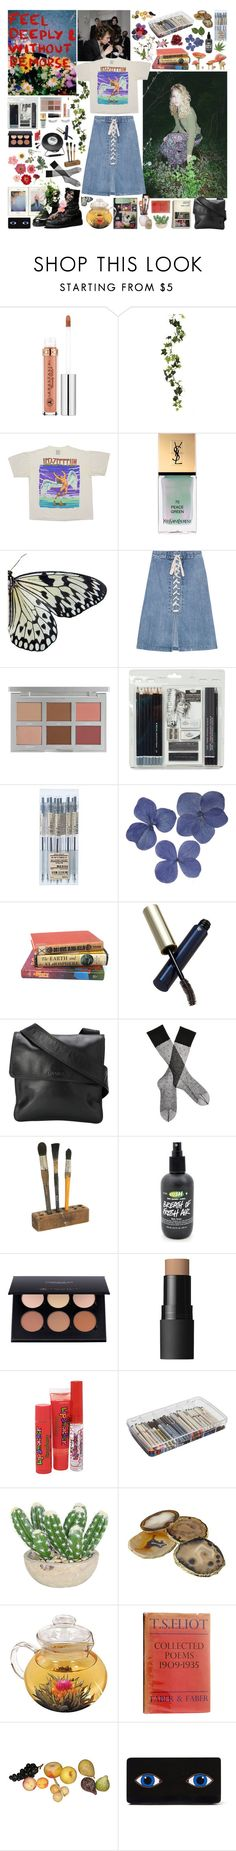 """""""the answer my friend, is blowin in the wind"""" by freakystyley ❤ liked on Polyvore featuring Anastasia Beverly Hills, Yves Saint Laurent, Sea, New York, Royal & Langnickel, Sony, Clé de Peau Beauté, Chanel, Gerbe, NARS Cosmetics and Bonne Bell"""